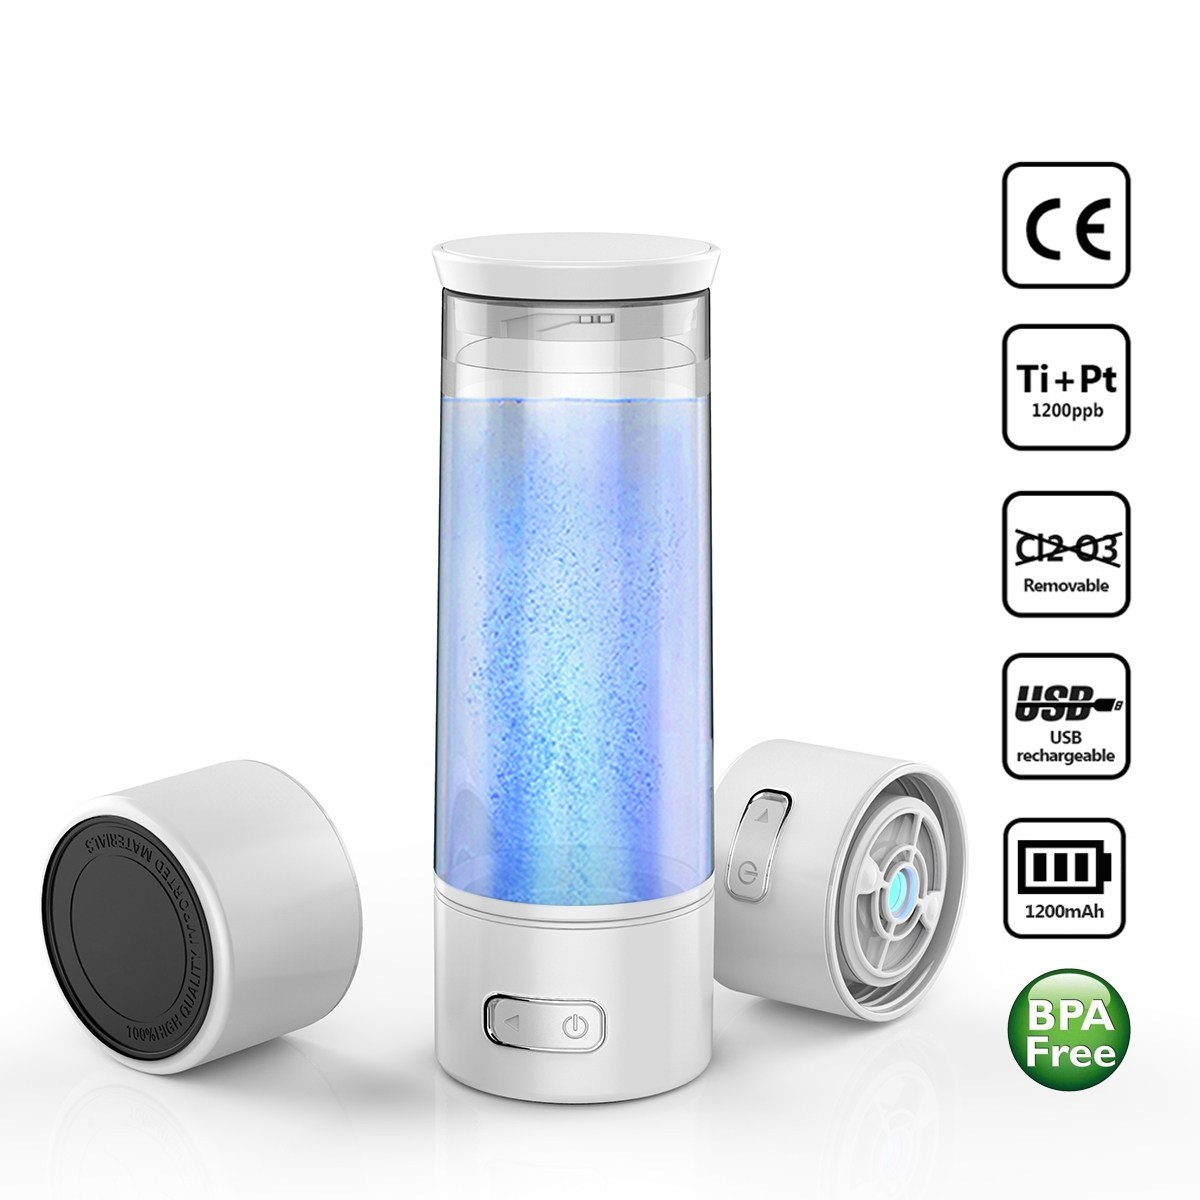 USB Rechargable High-Rich Hydrogen Water Bottle Ionizer Maker Generator Hydrogen Oxygen Separation Alkaline Energy Cup Filter 260ml rechargeable rich hydrogen water generator electrolysis energy hydrogen rich antioxidant orp h2 water ionizer glass bottle